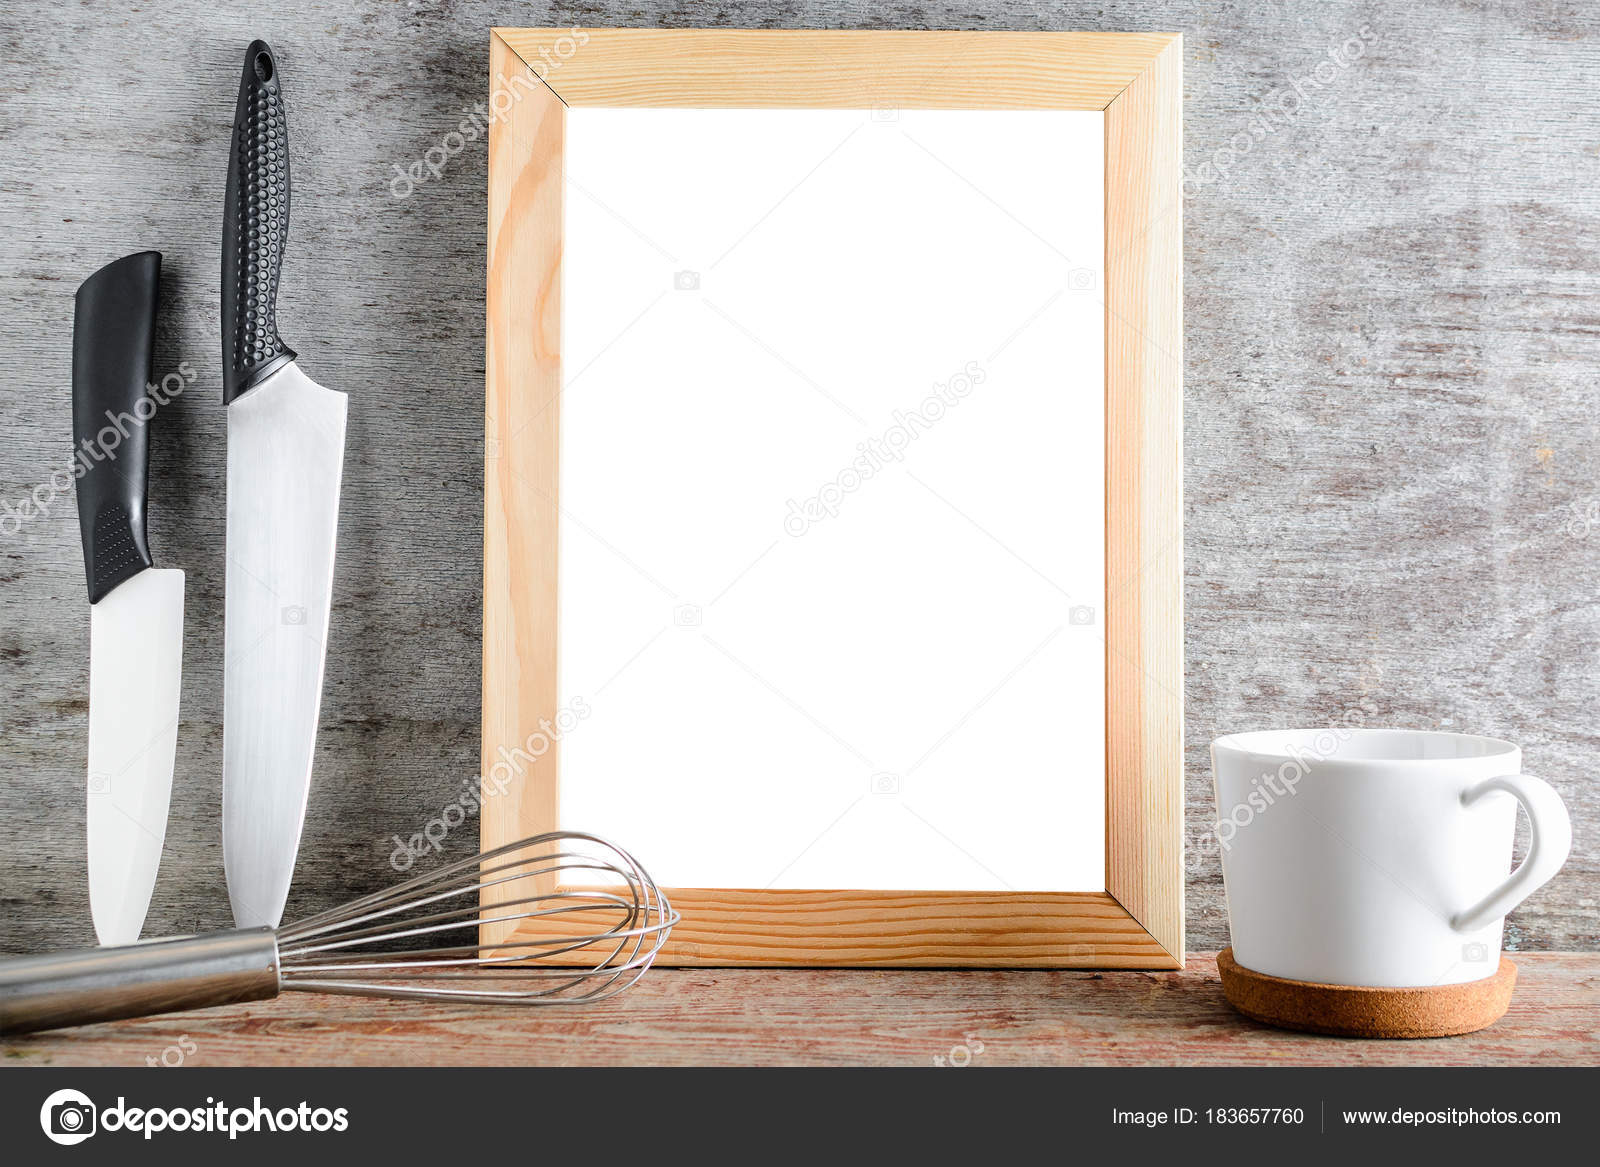 Surprising Empty Wooden White Isolated Frame With Kitchen Accessories Home Interior And Landscaping Ferensignezvosmurscom